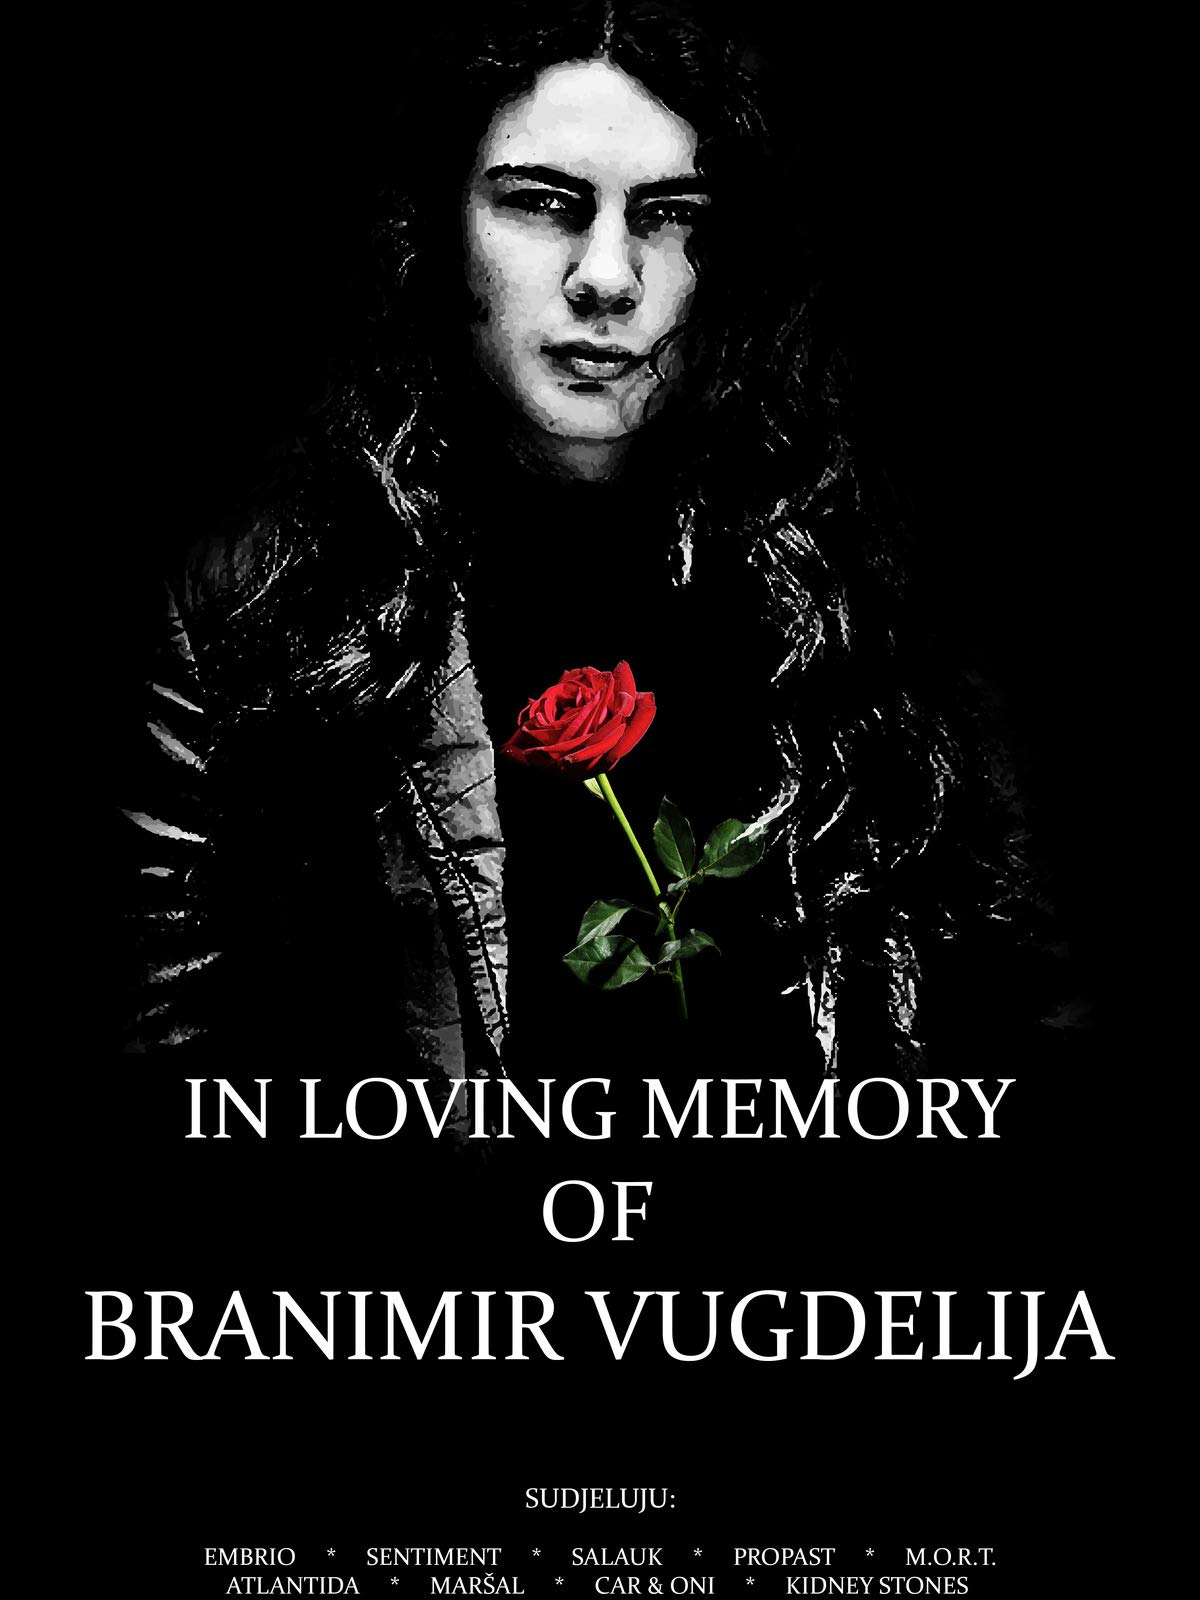 In Loving Memory Of Branimir Vugdelija